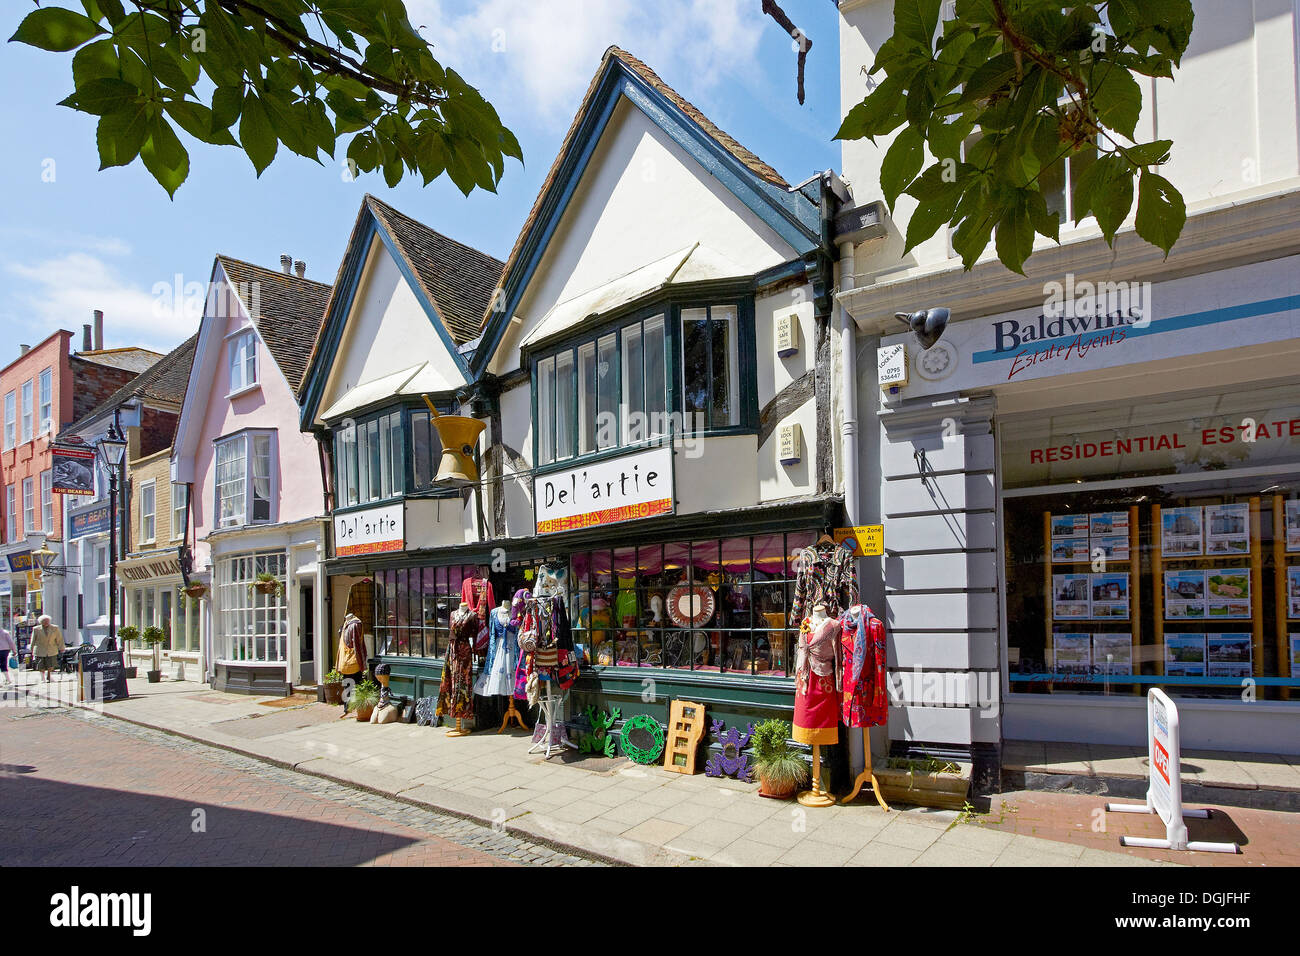 Shops in Faversham. - Stock Image